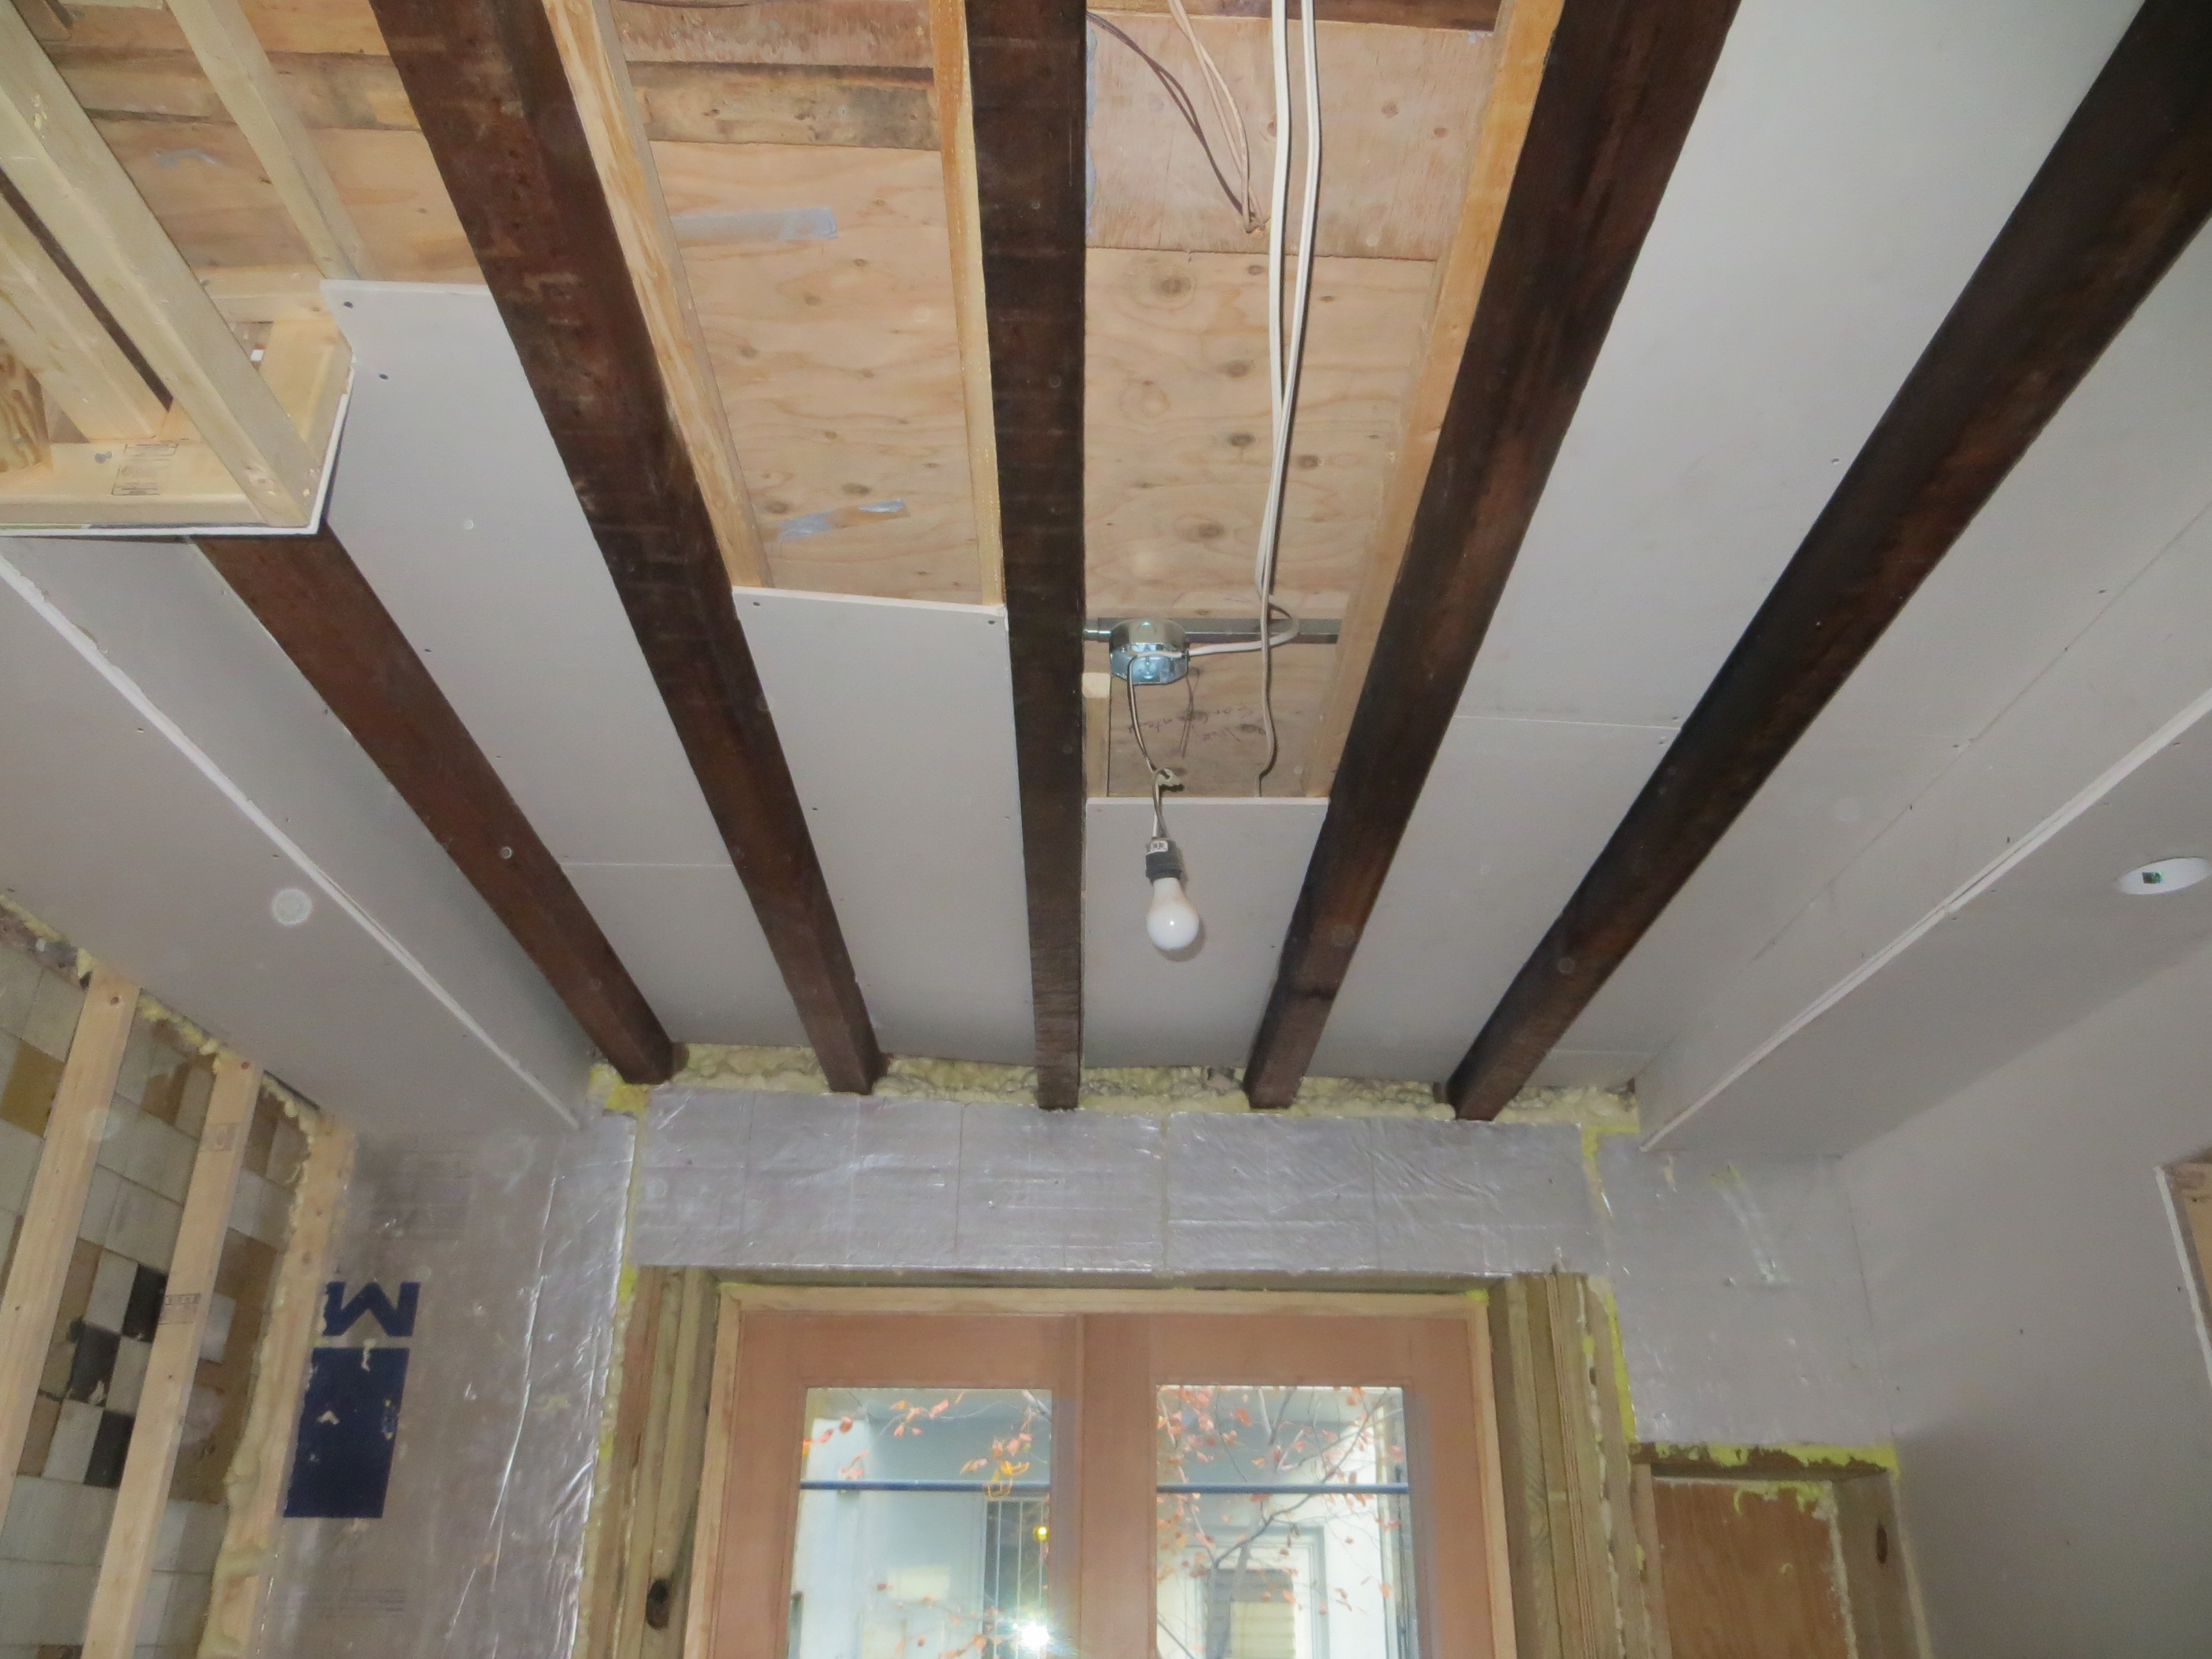 I want to do an exposed floor joist ceiling, painted black